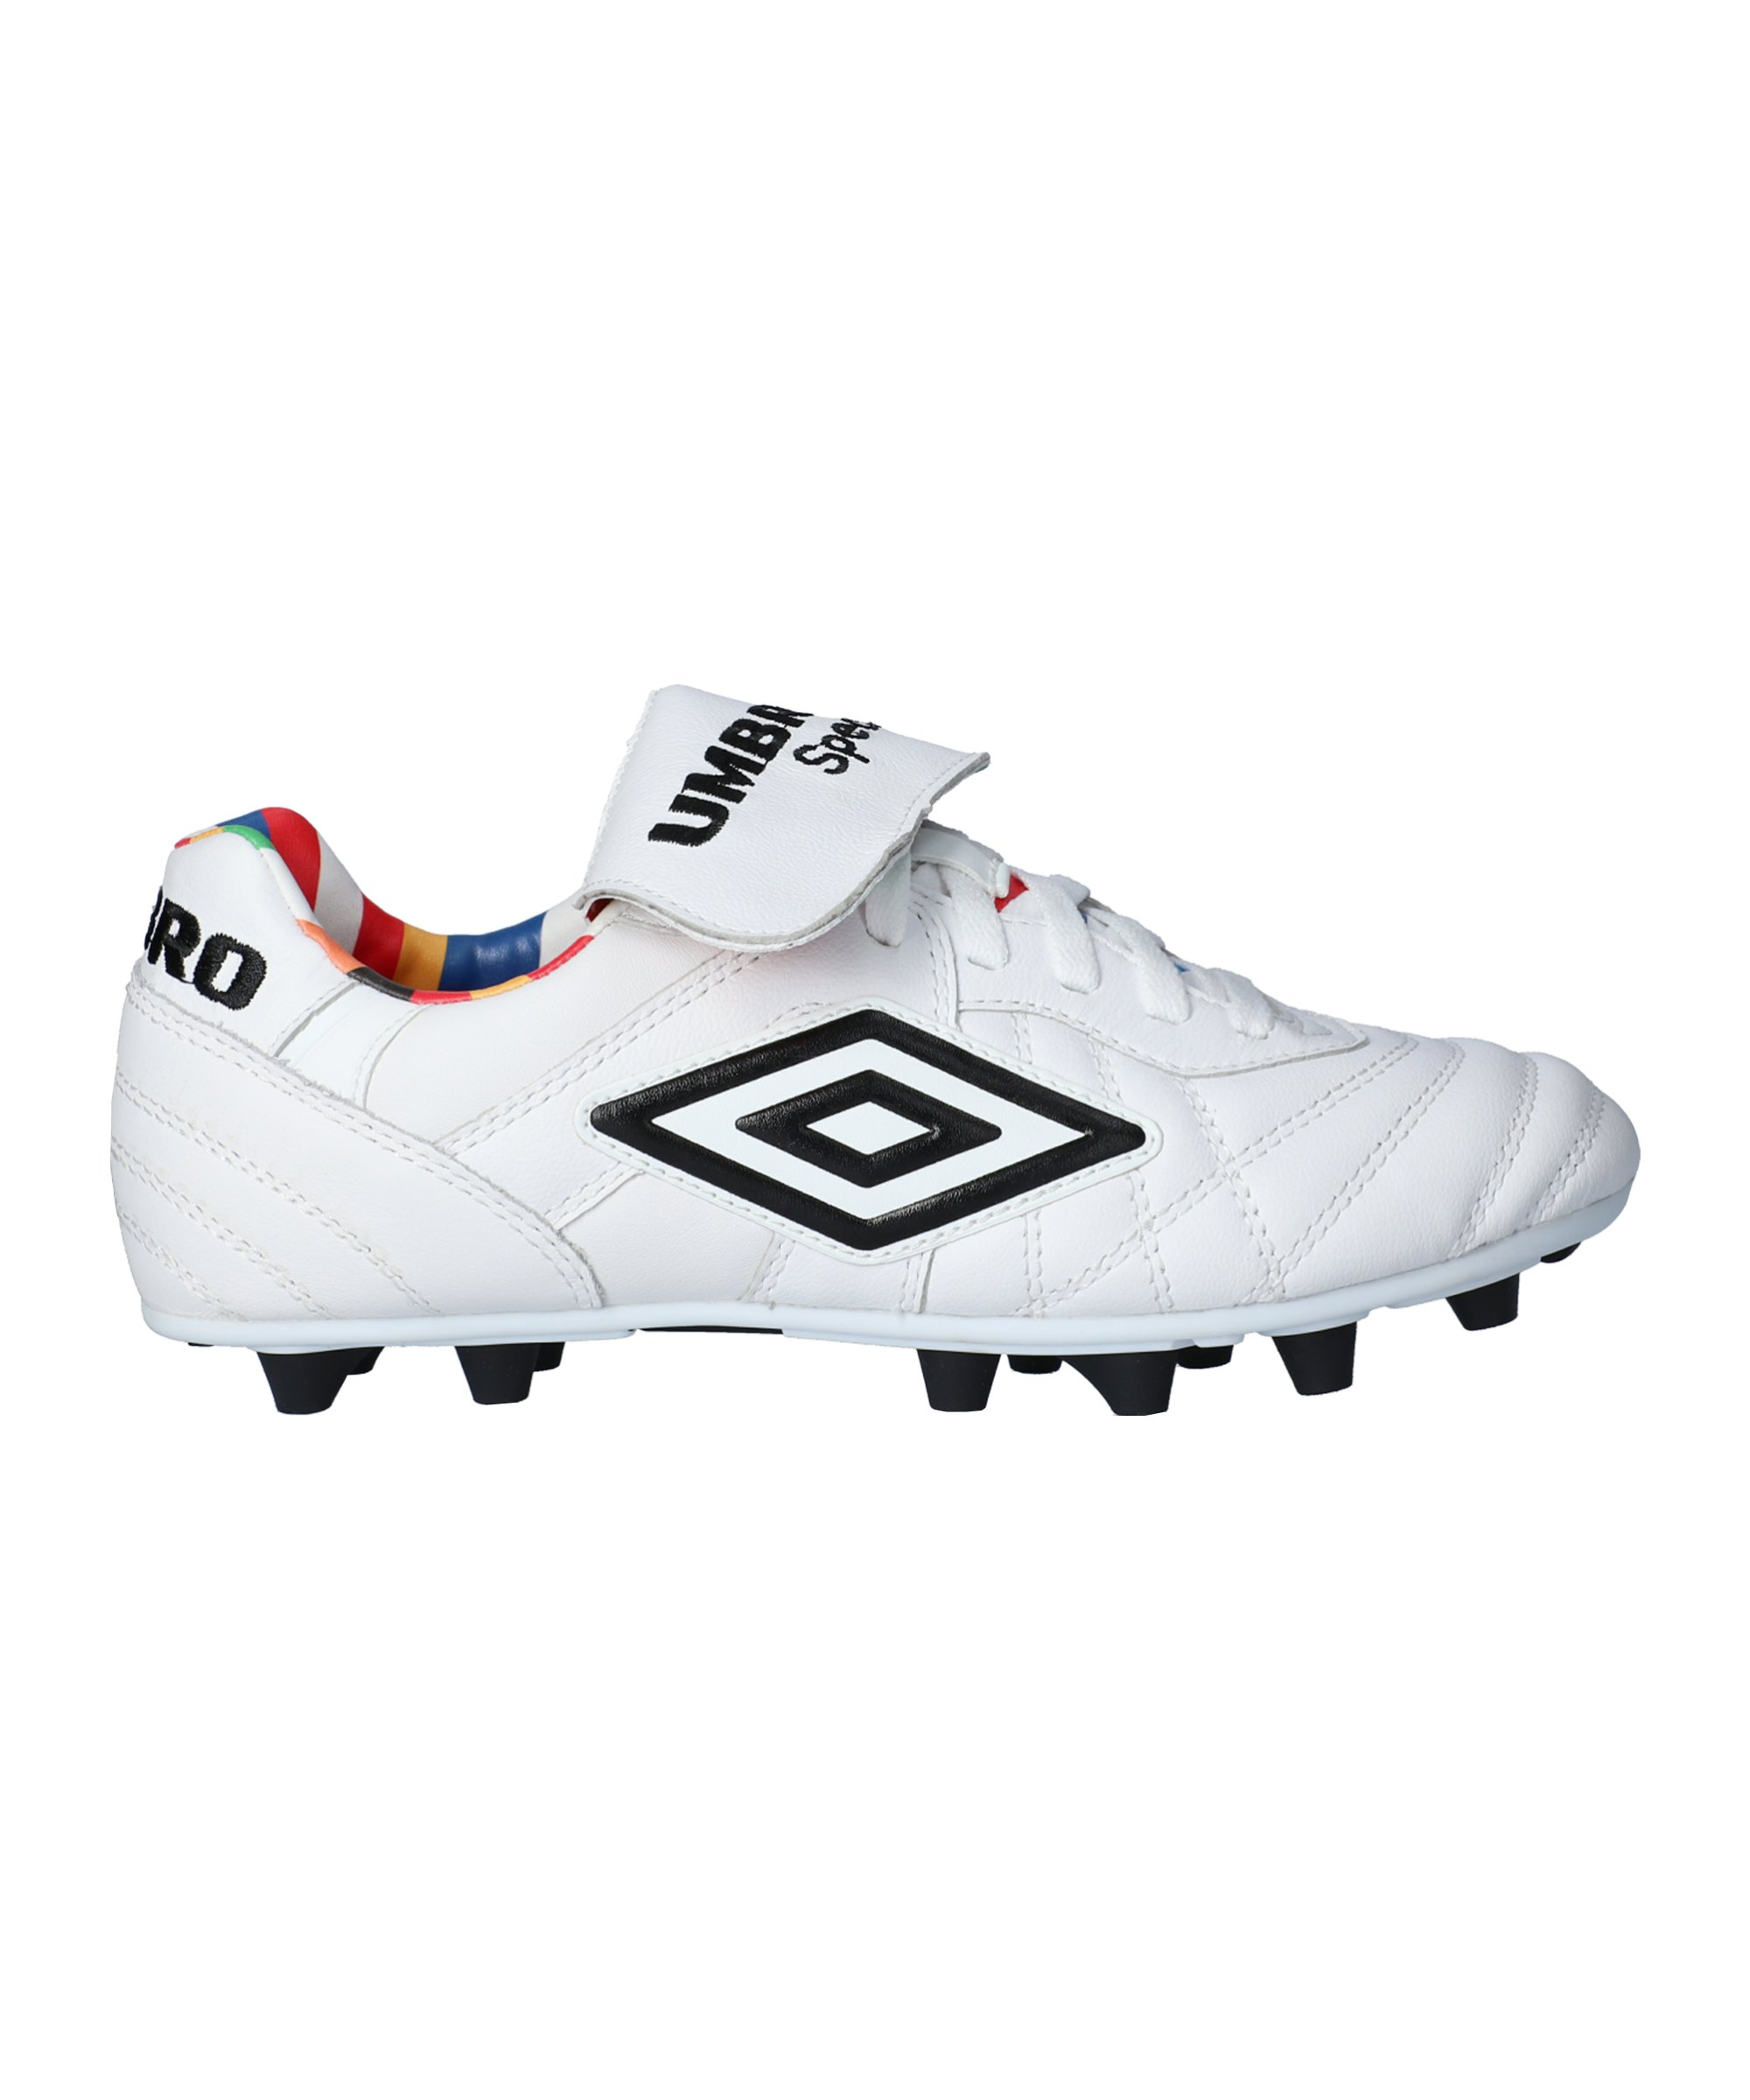 Umbro Speciali Pro FG Weiss F11C - weiss